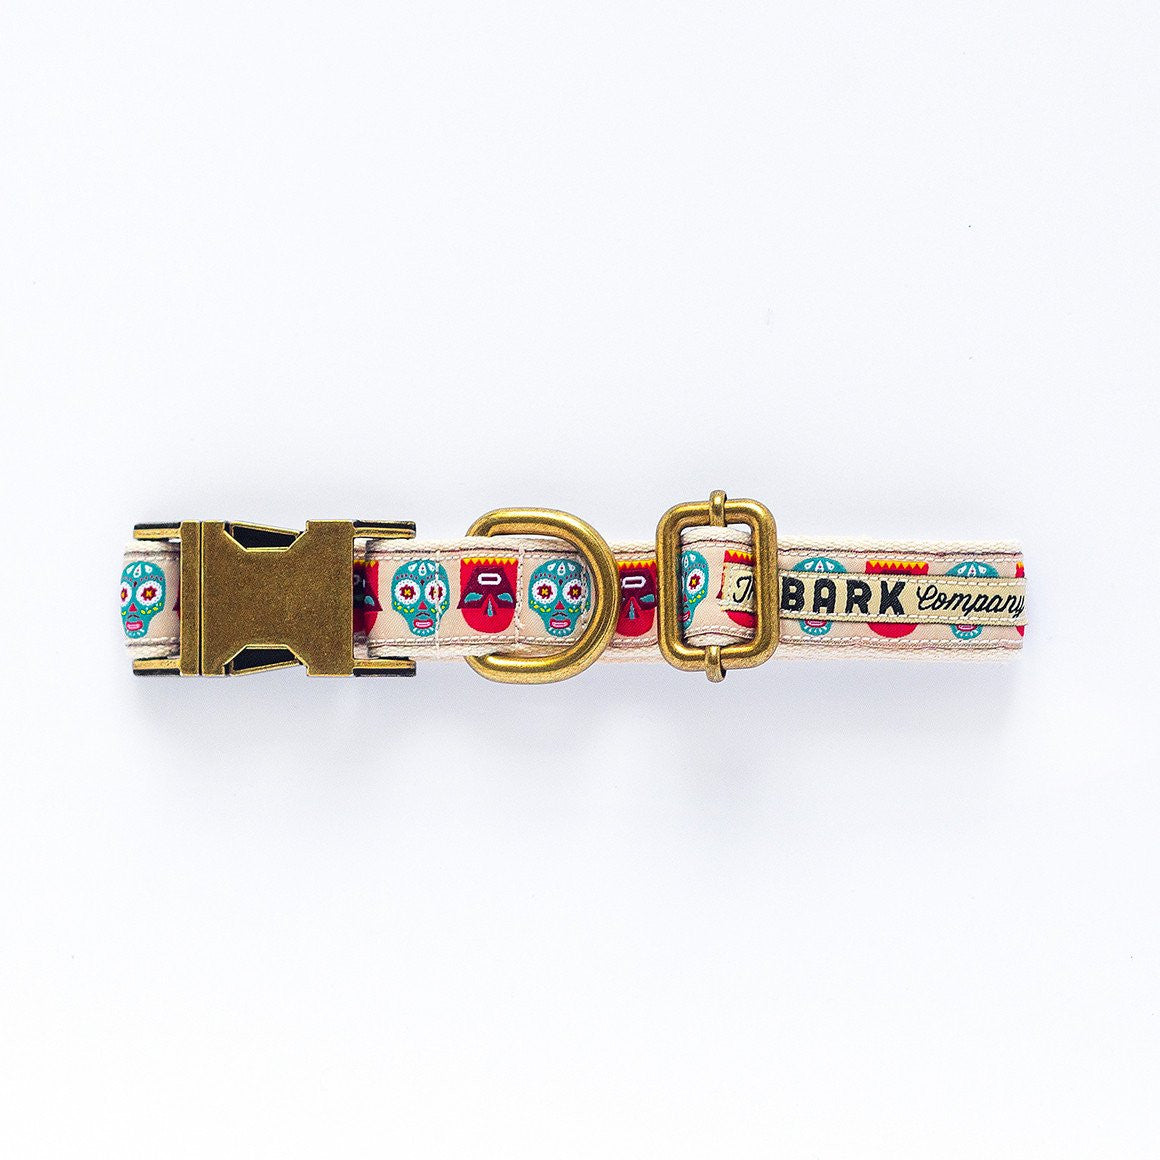 Frida dog collar from The Bark Co - 1